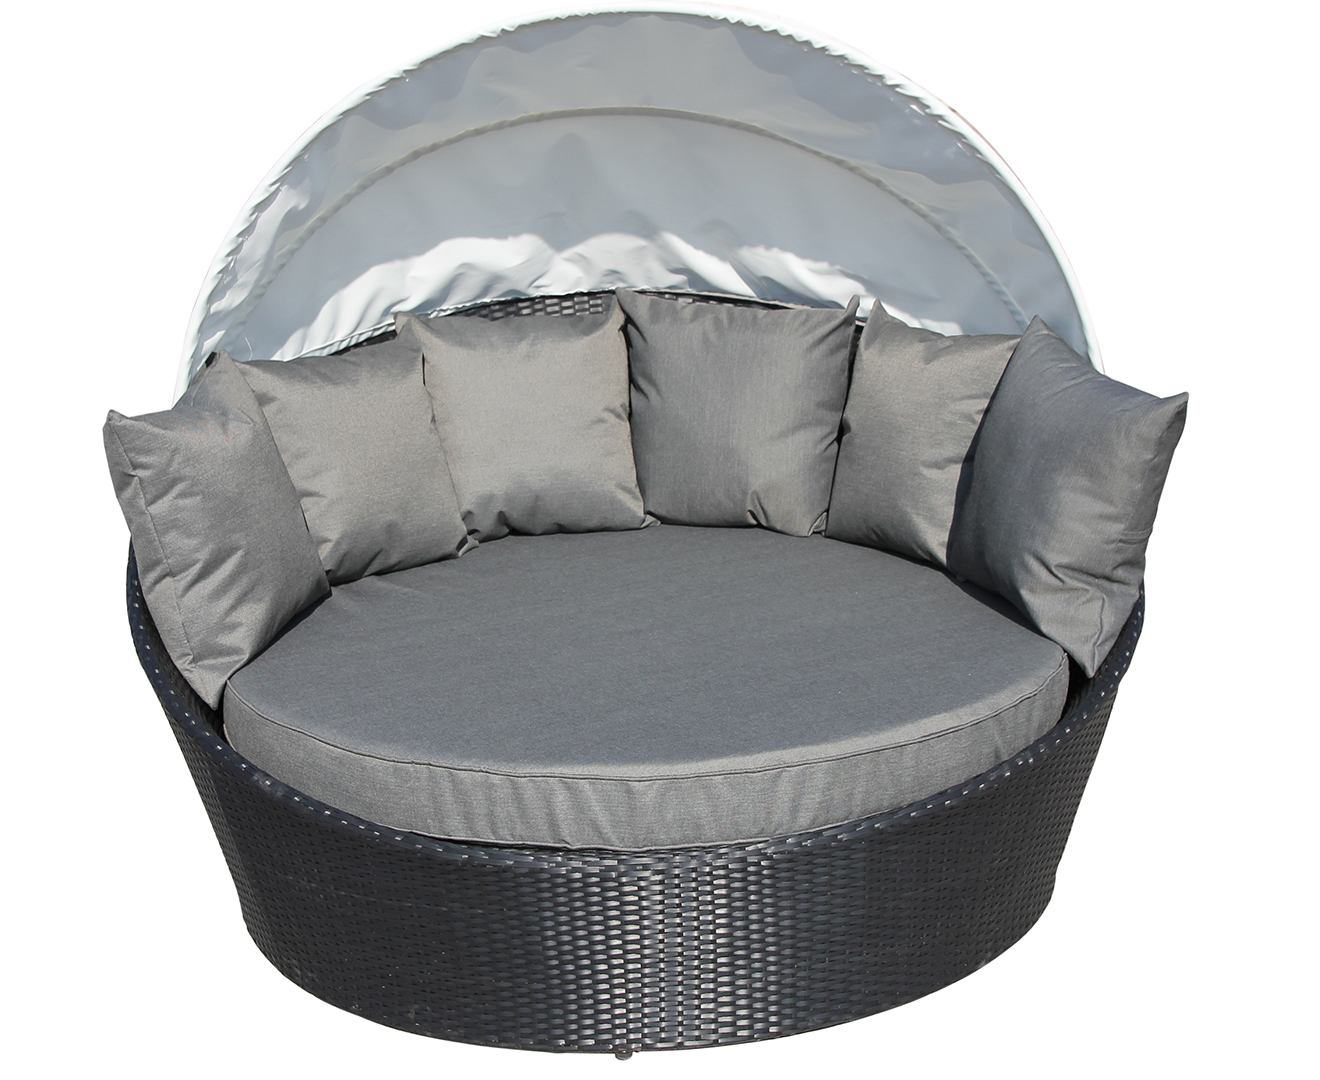 wicker rattan sofa round couch lounge w canopy cover black outdoor furniture ebay. Black Bedroom Furniture Sets. Home Design Ideas